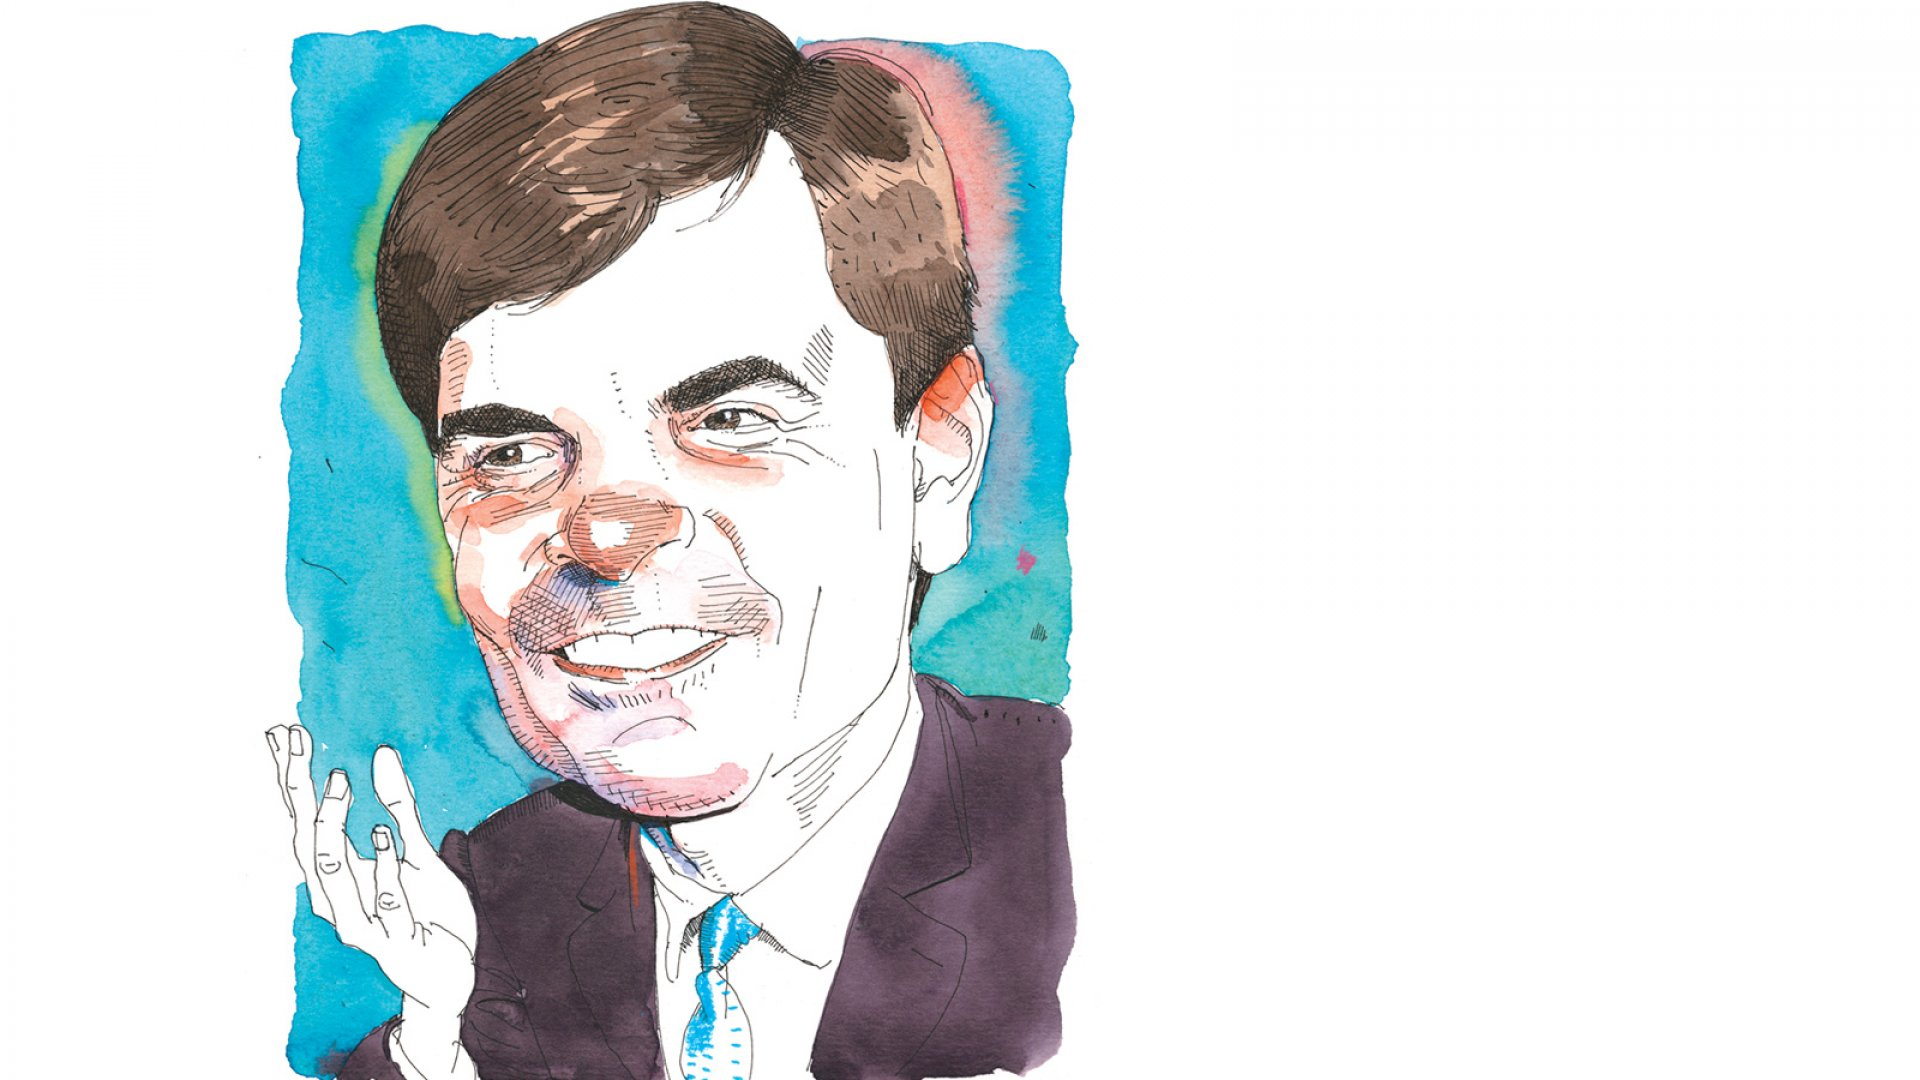 George Stephanopoulos on the Art of Conversation